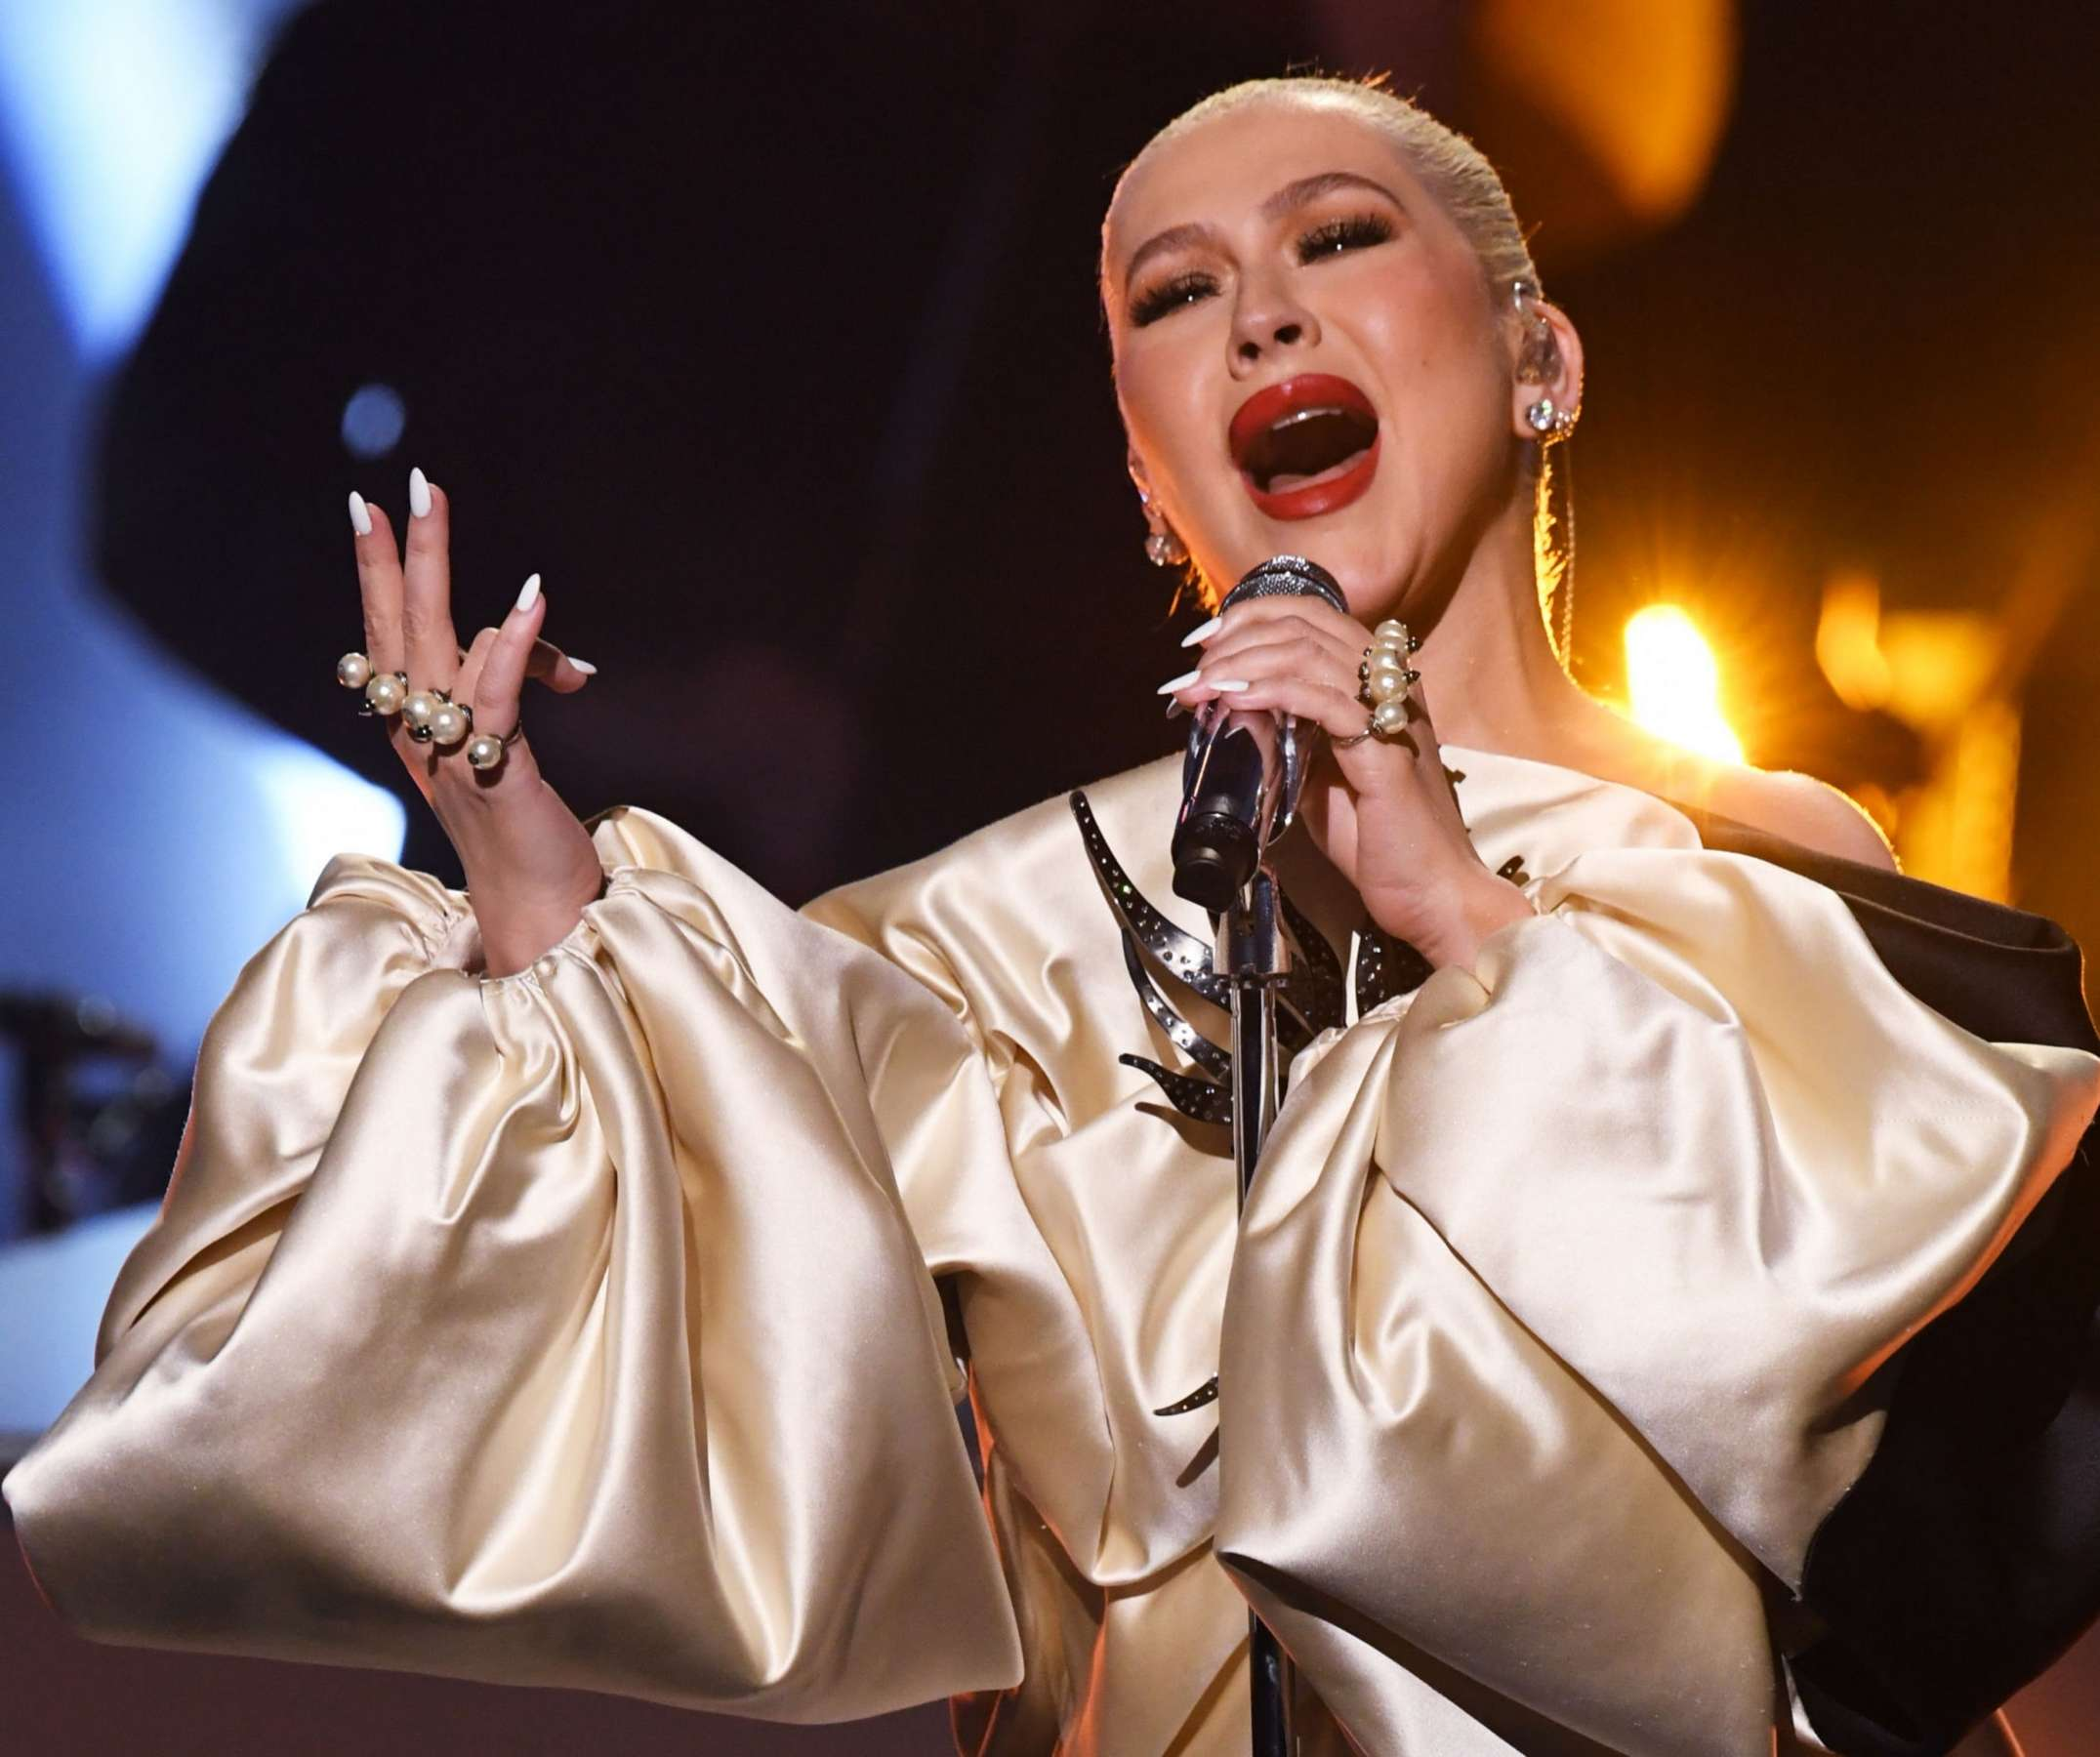 Christina_Aguilera_-_Performs_at_2019_American_Music_Awards_at_Microsoft_Theater_on_November_242C_2019-08.jpg